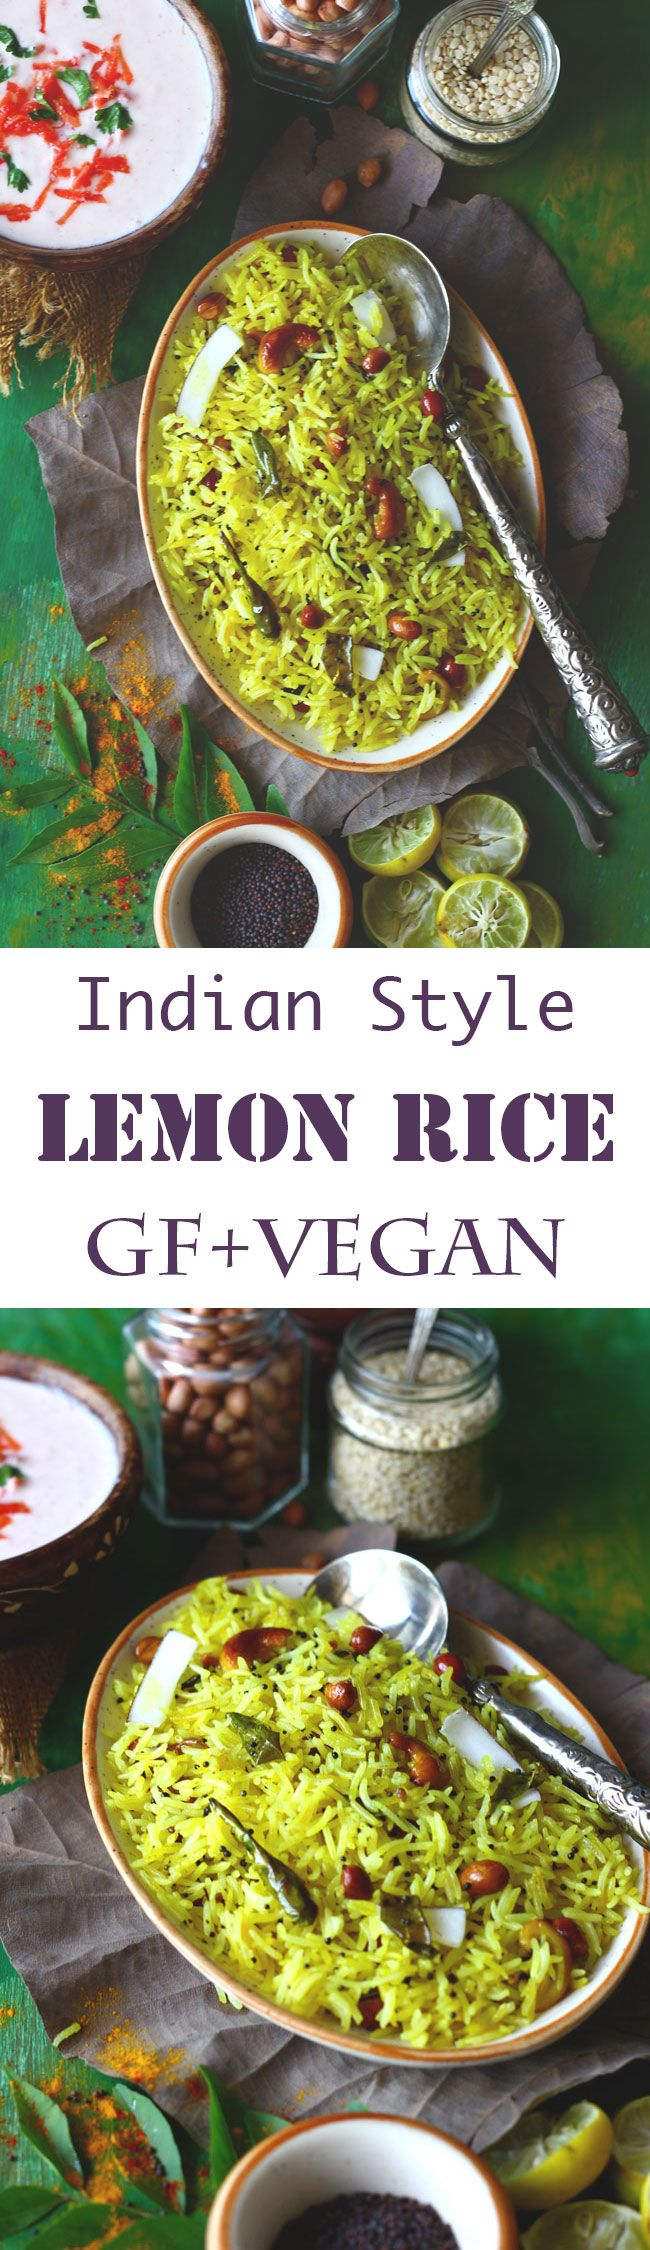 When we talk about one-pot rice meals, Indian style lemon rice is one of our favorite ones. funfoodfrolic.com #vegan #glutenfree #indianfood #rice